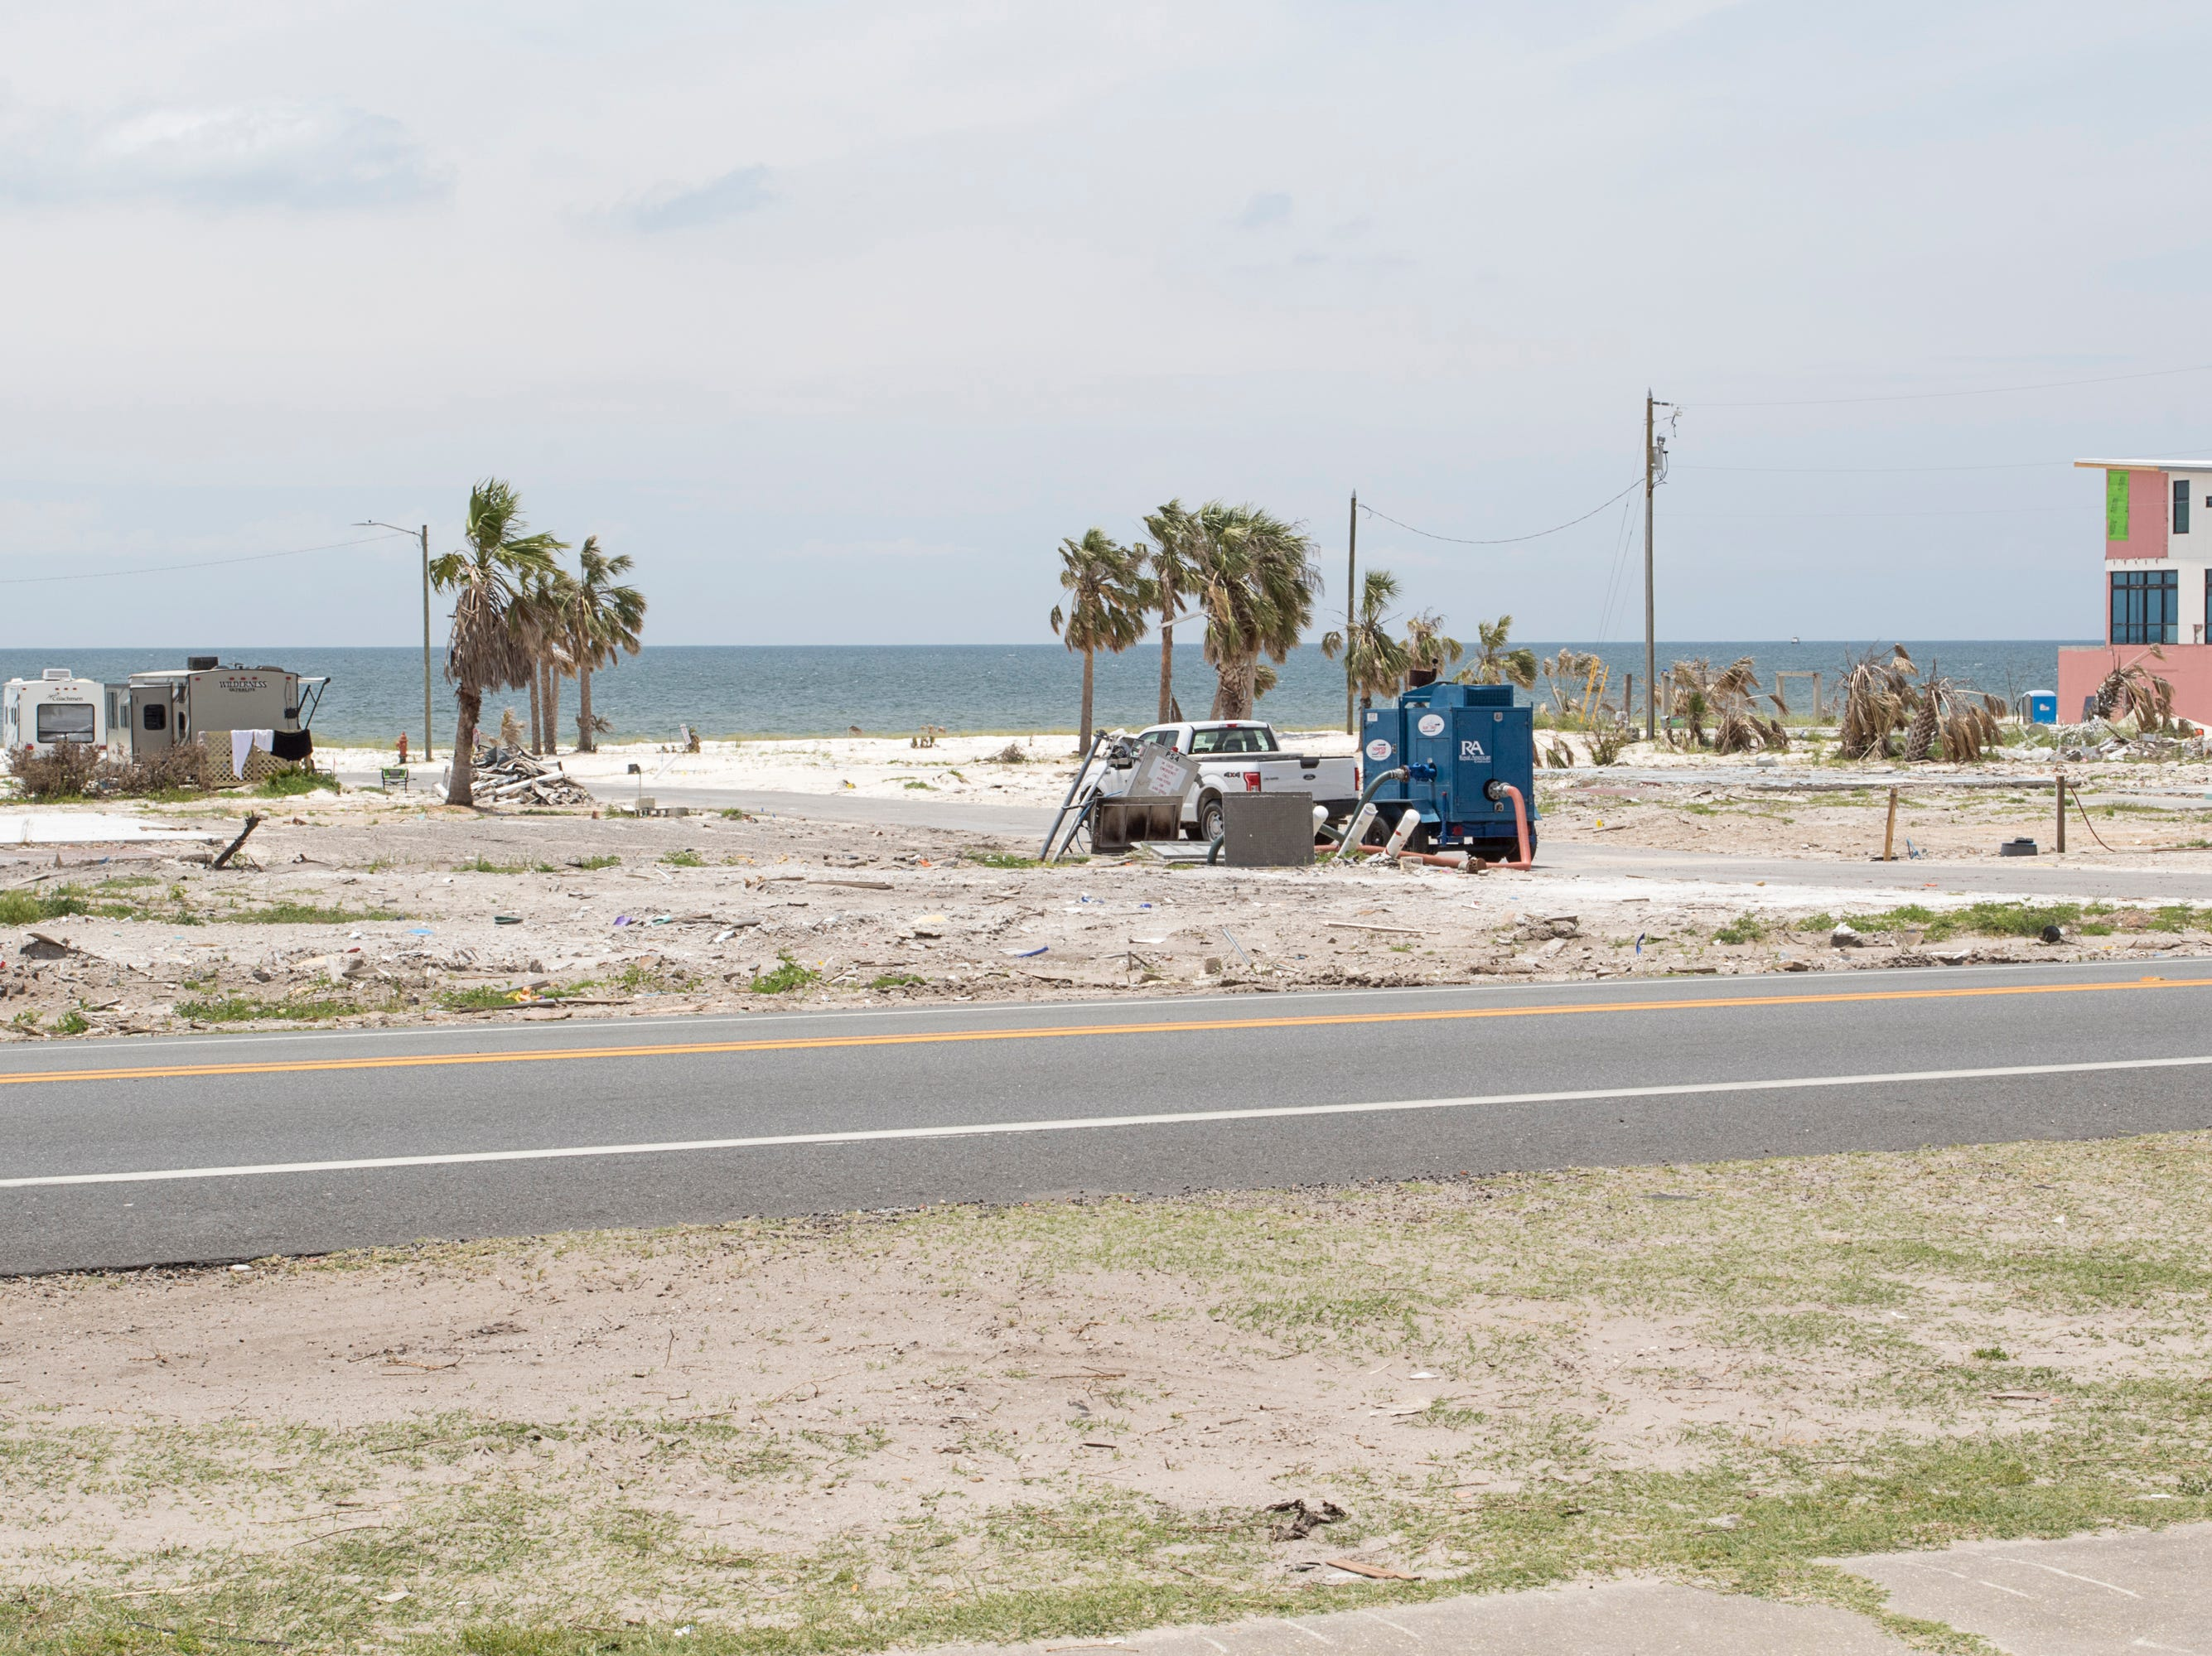 Once filled with houses, now there is mostly nothing but sand along great stretches between Rt. 98 and the Gulf of Mexico after Hurricane Michael in Mexico Beach, Florida on Wednesday, May 8, 2019.  Michael made landfall as a Category 5 hurricane between Mexico Beach and Tyndall Air Force Base on October 10, 2018.